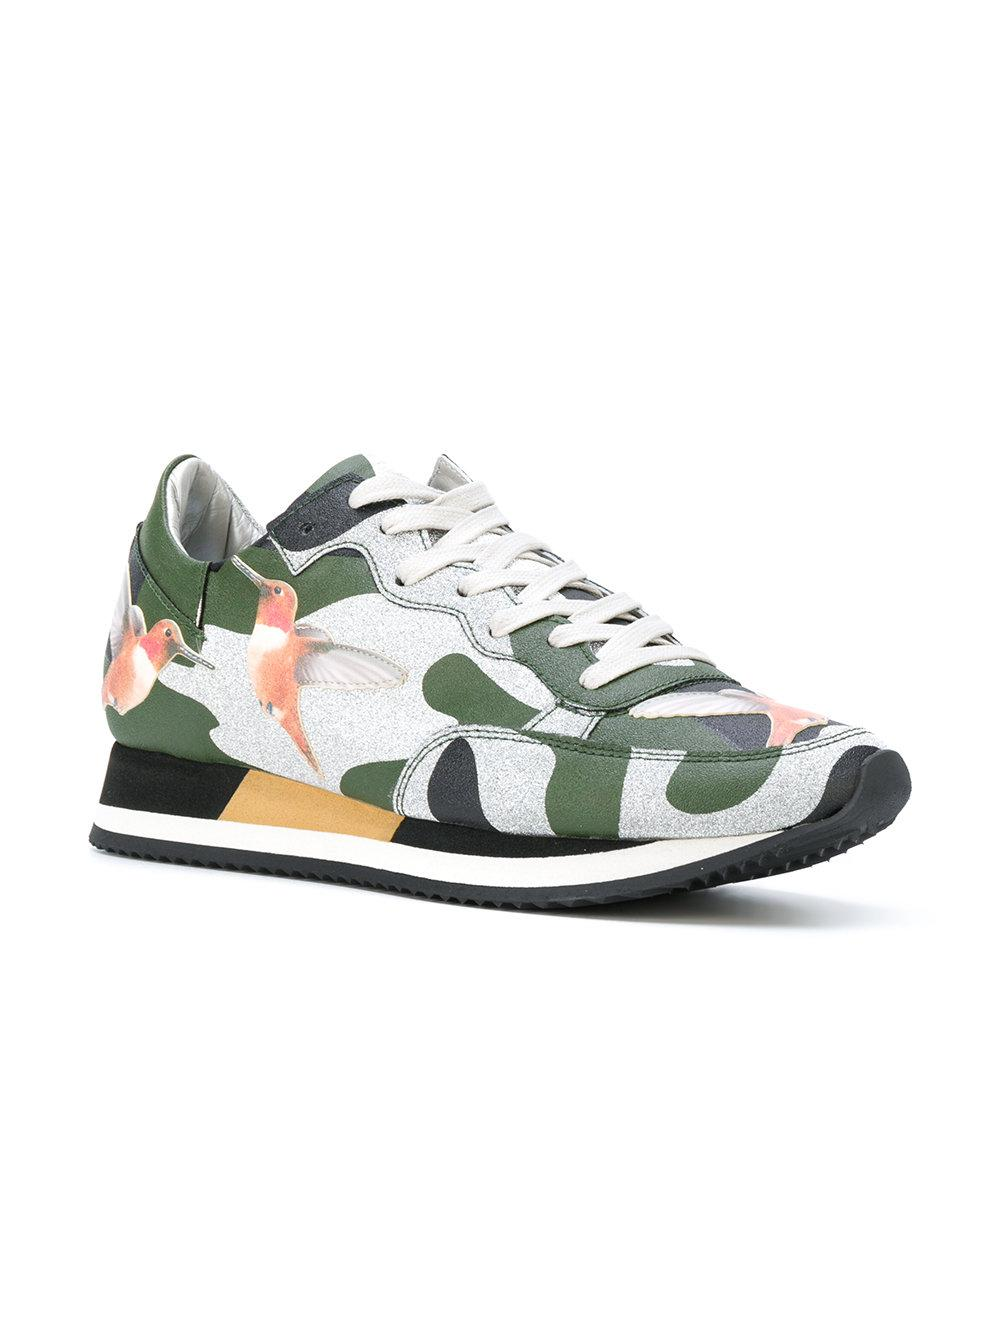 Philippe Model Leather Paradis Sneakers in Green